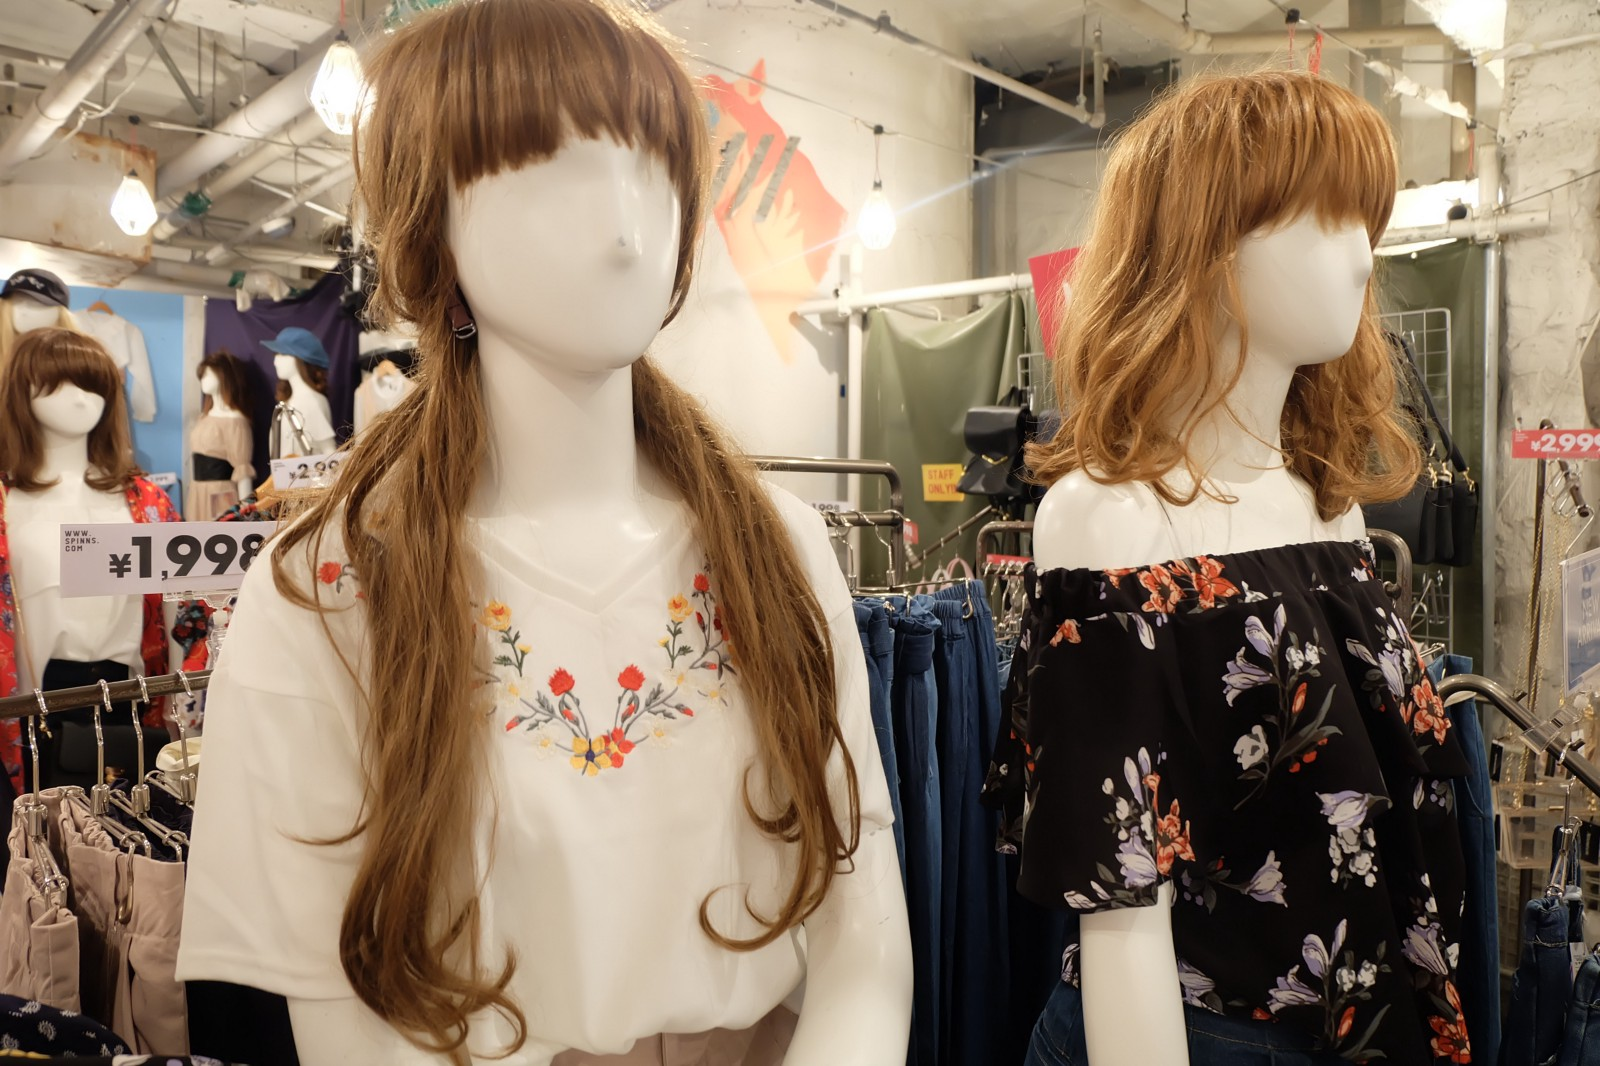 Fashionable clothes displayed at WEGO